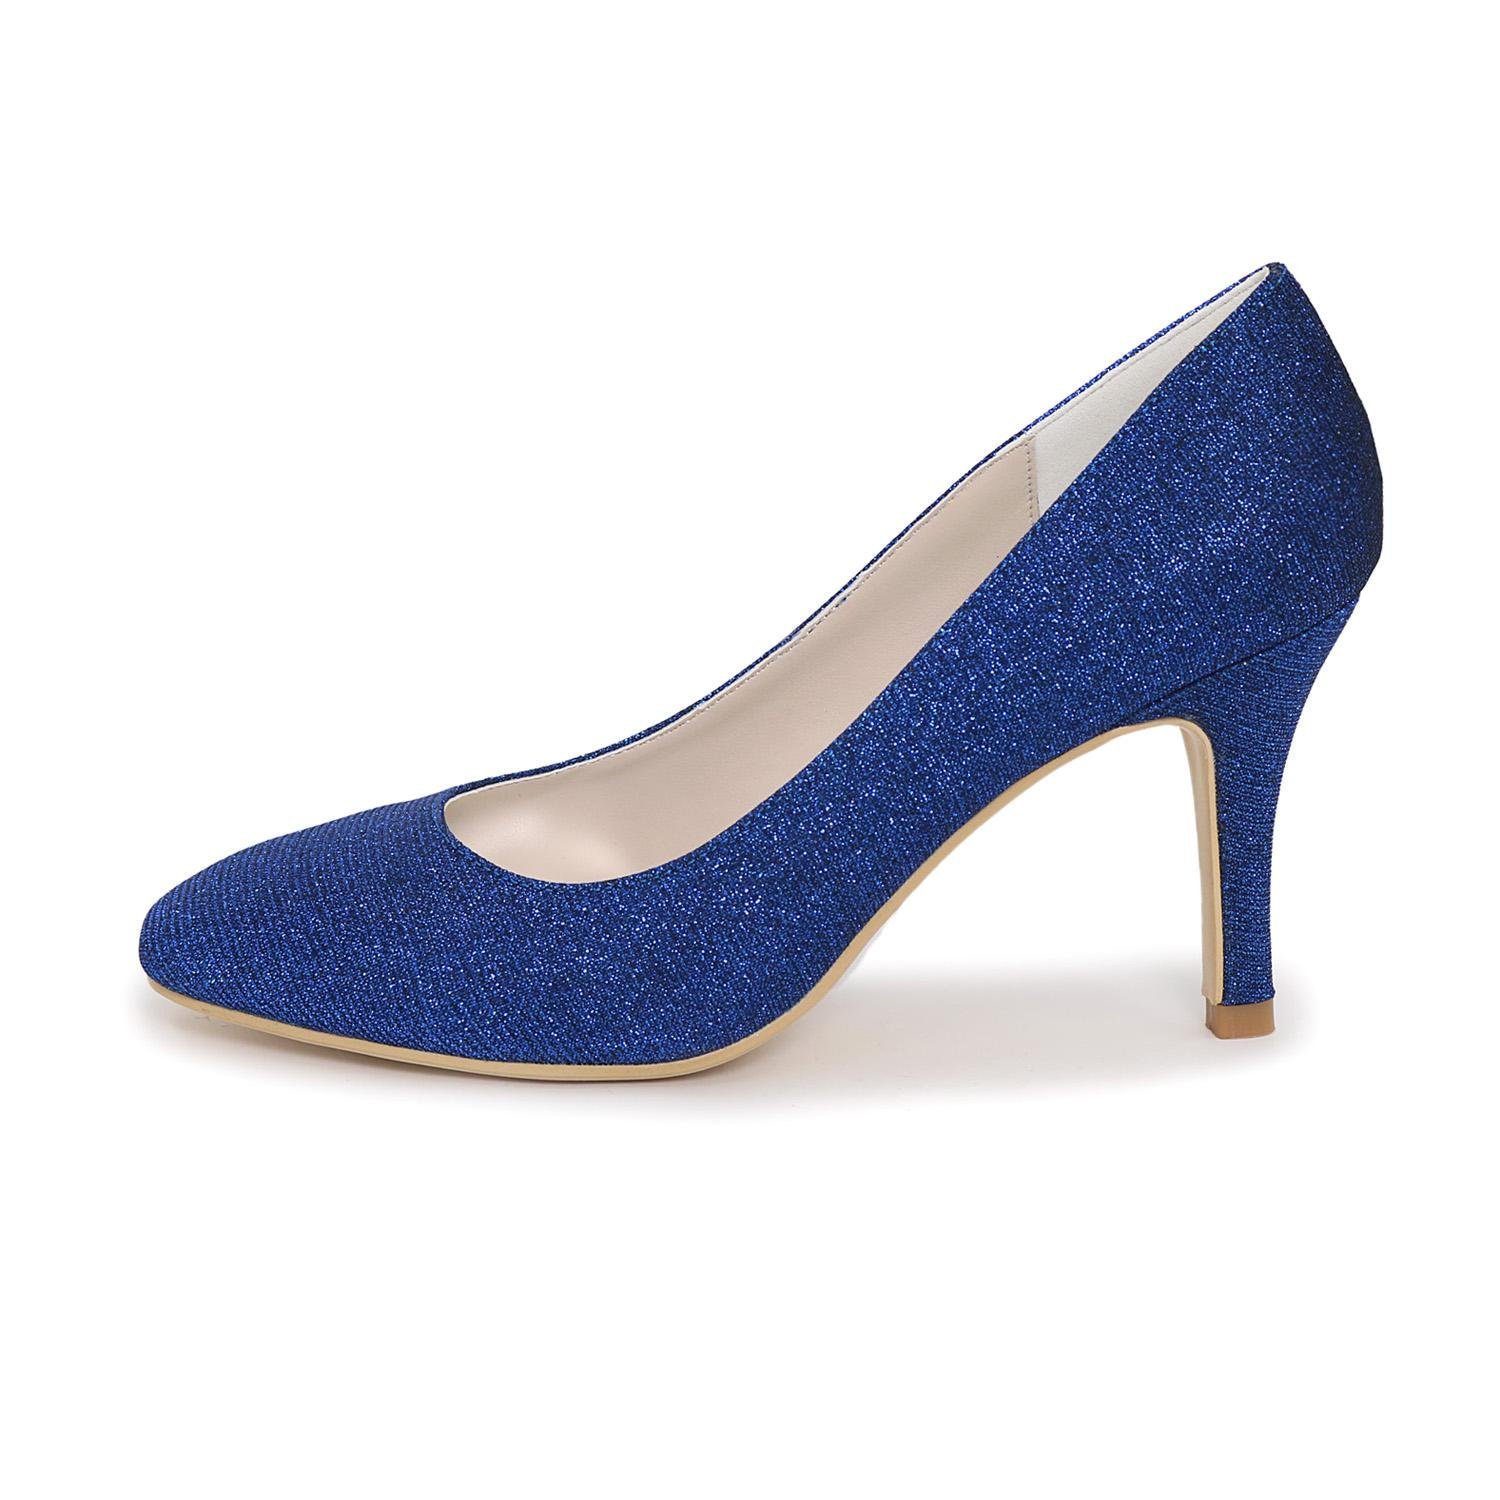 725747ba83aa ... Women s Wedding Shoes Shoes Shoes Heels   Platform Heels Wedding    party and more colors available